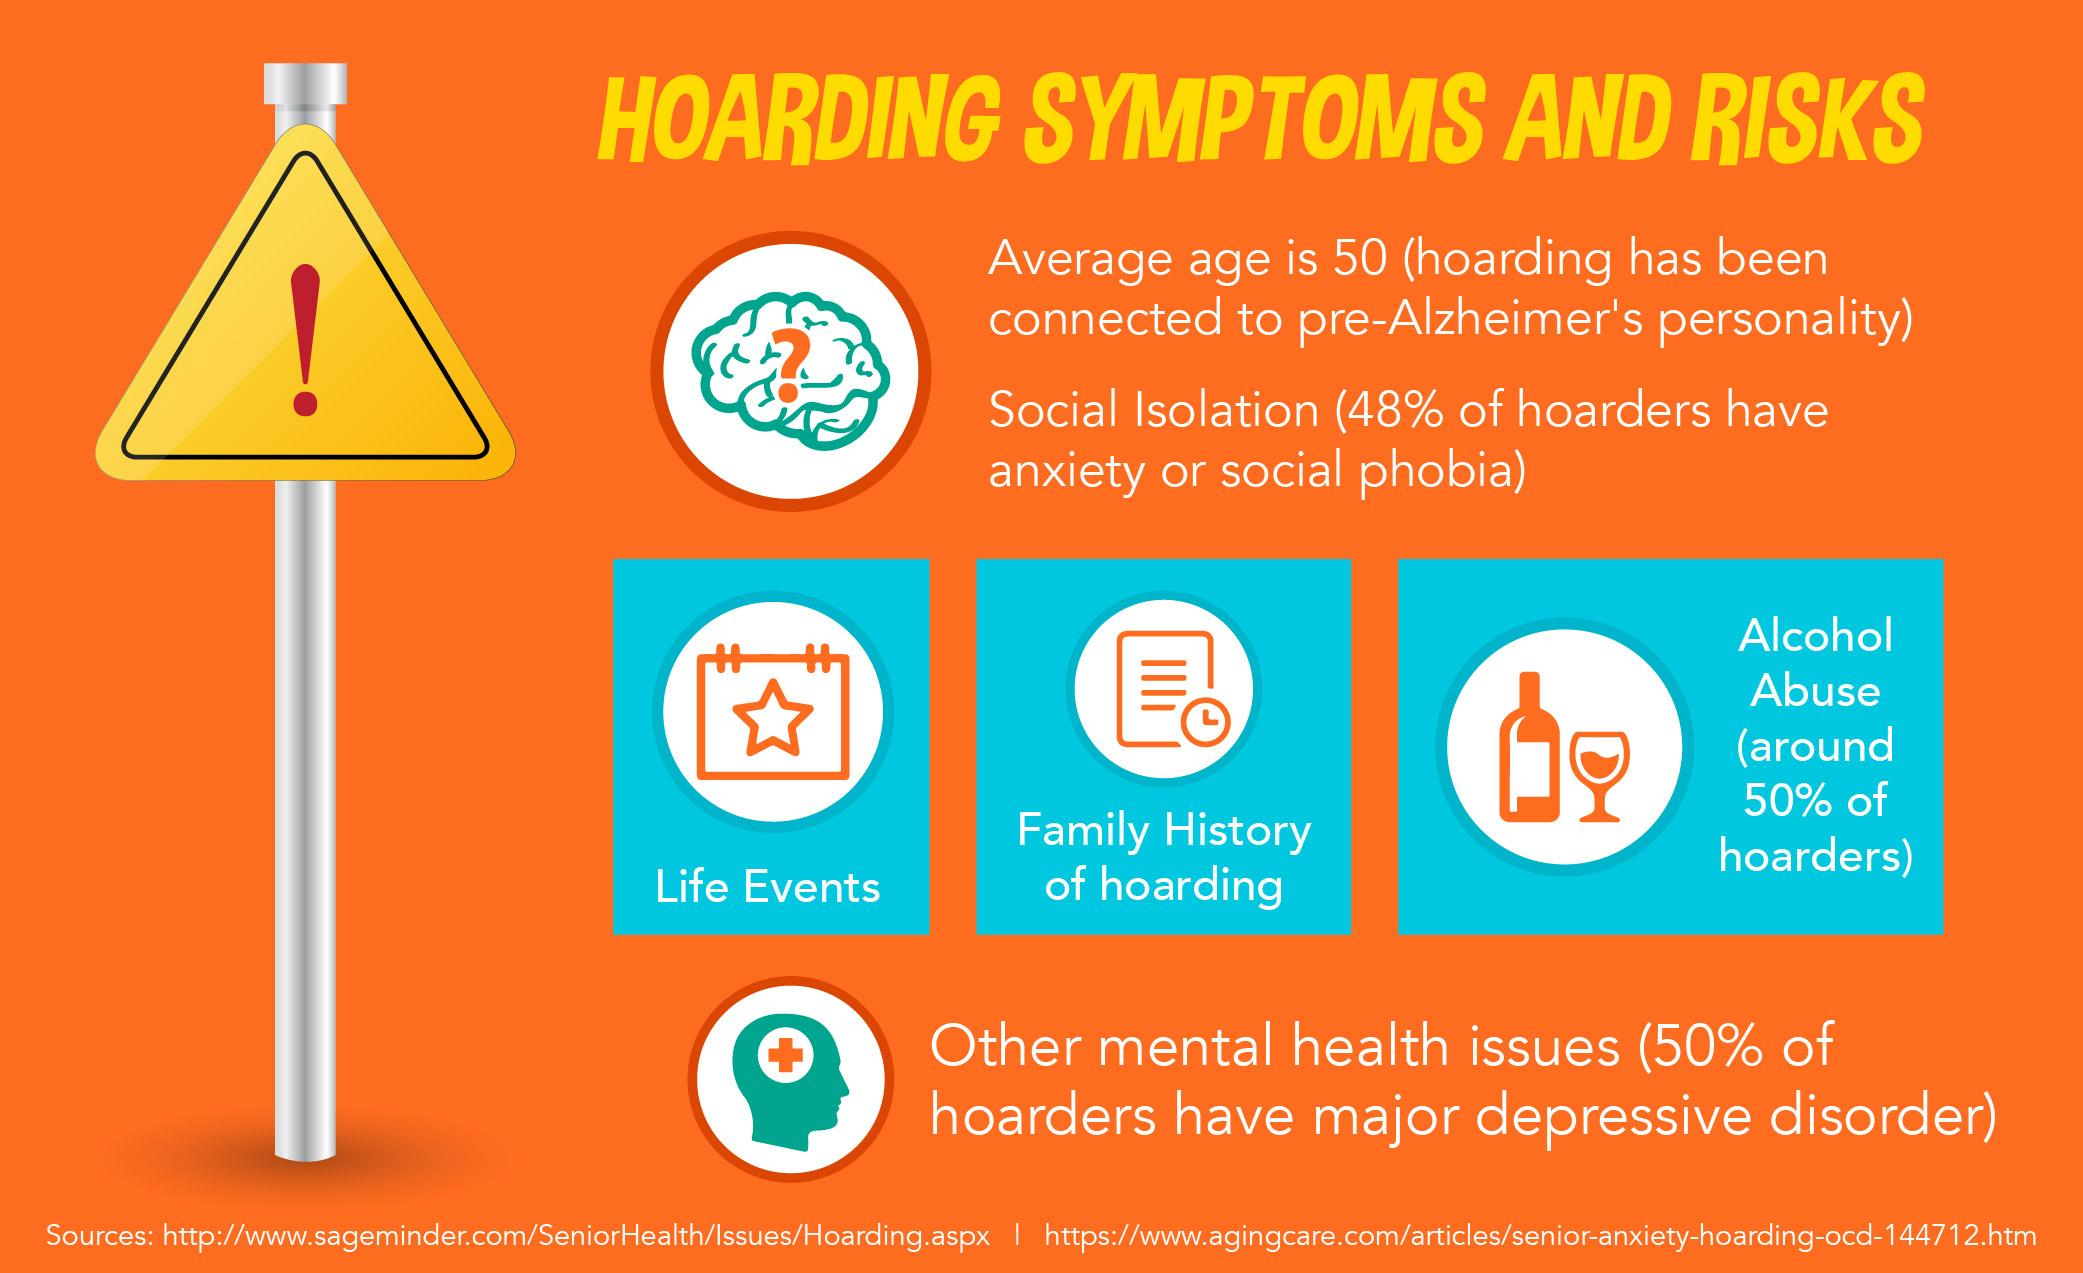 hoarding symptoms and risks